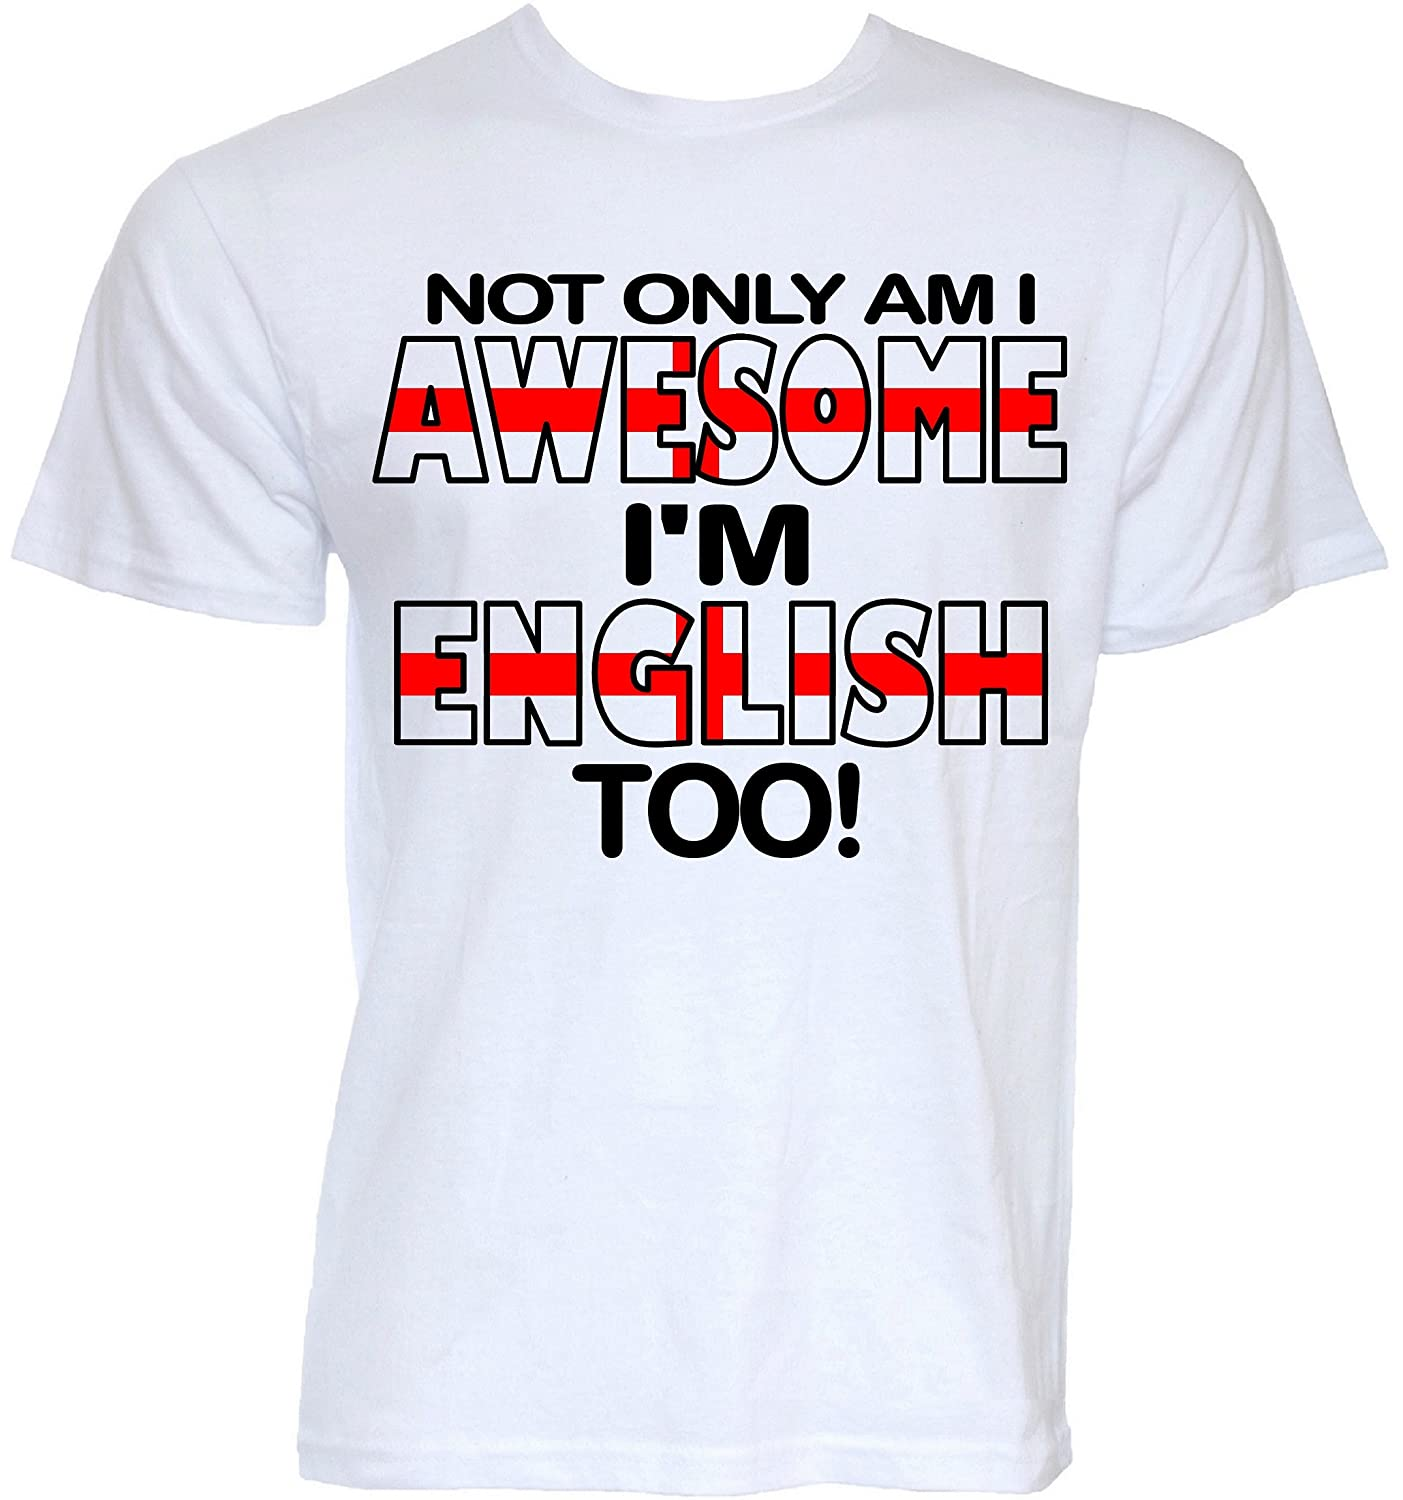 09b9329c Beat Tees Clothing Mens Funny Novelty Awesome England English Flag Joke  Slogan Gifts T-Shirts: Amazon.co.uk: Clothing